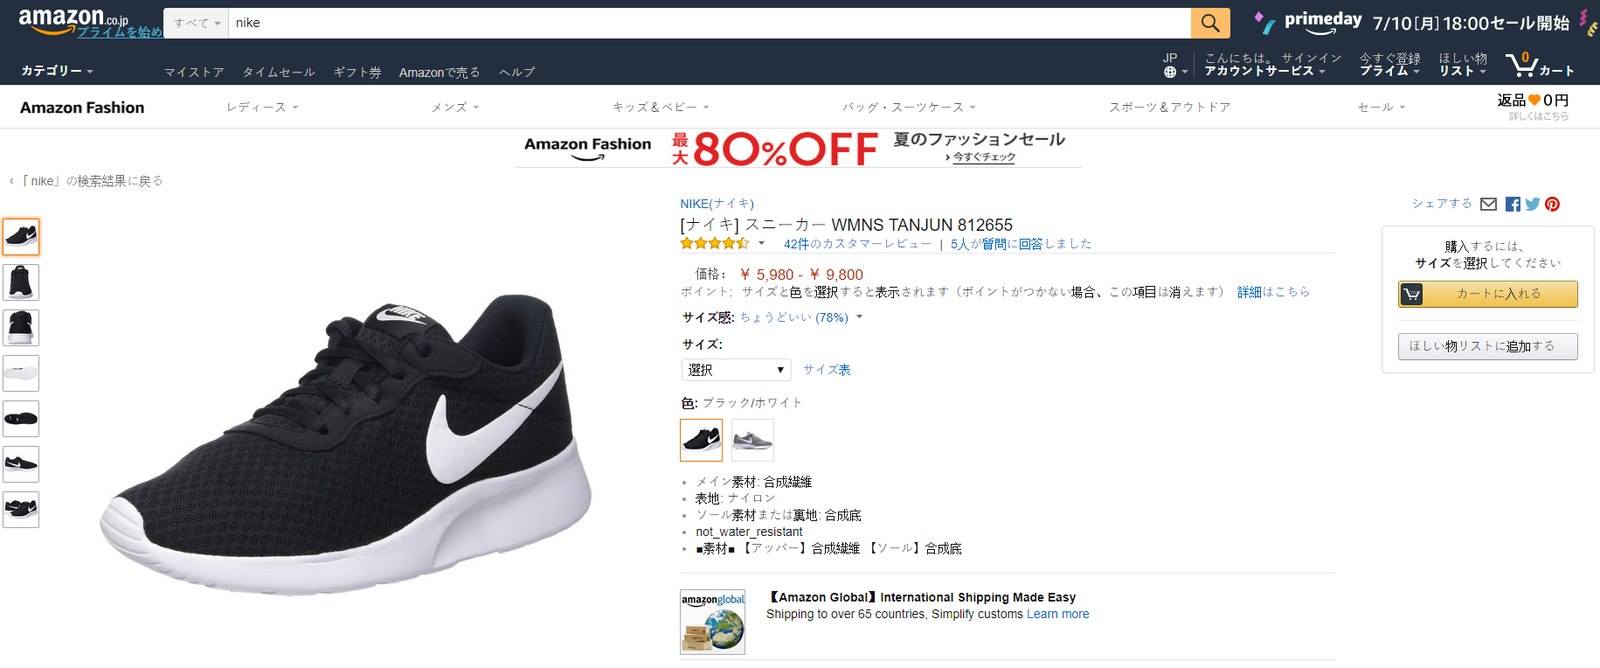 Nike sur Amazon  US, France, Japan, China....